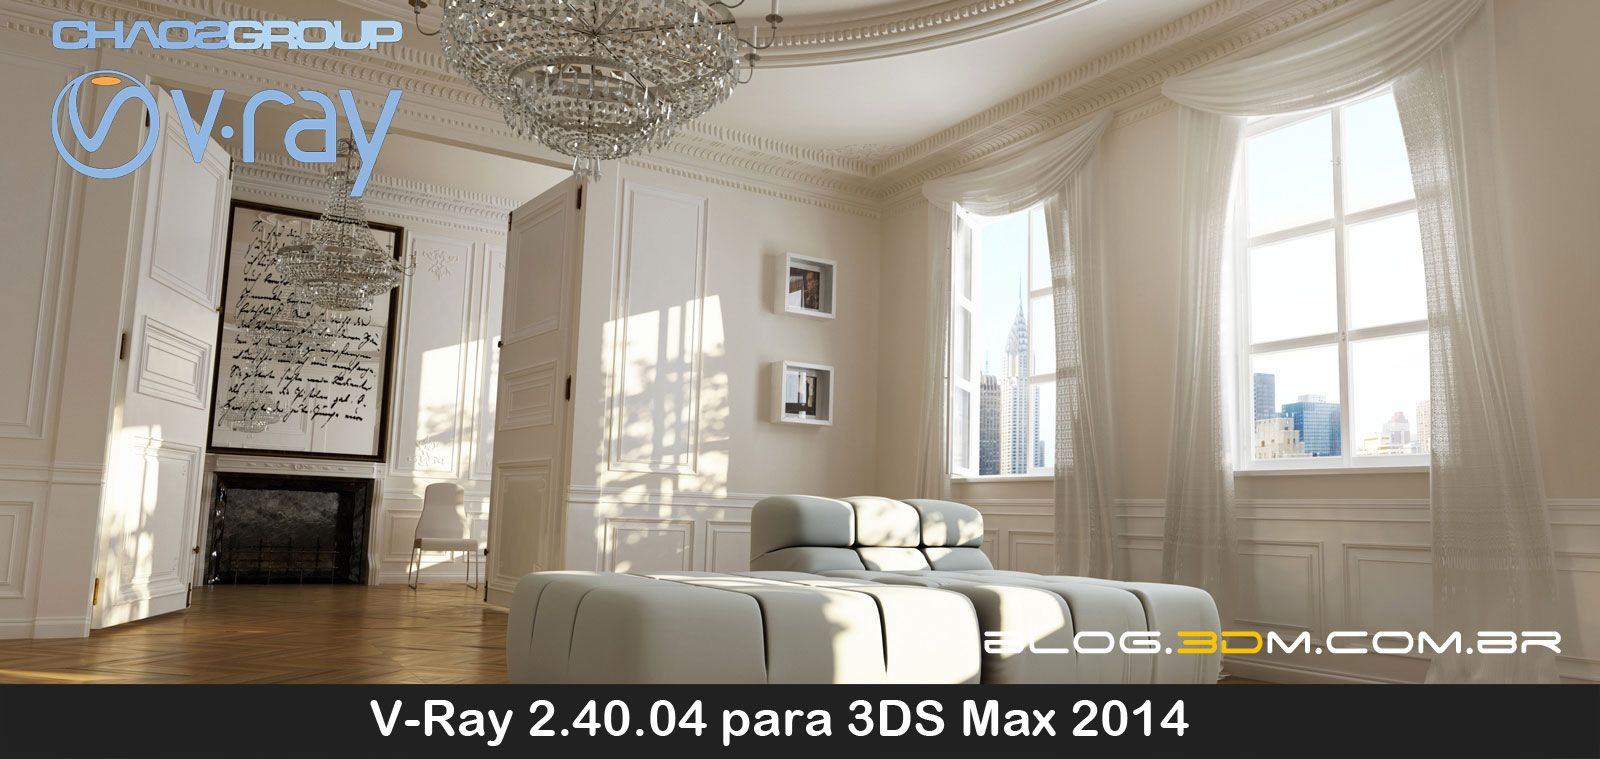 Vray 2 0 for 3ds max | uwhblanchuck | Interior rendering, 3d